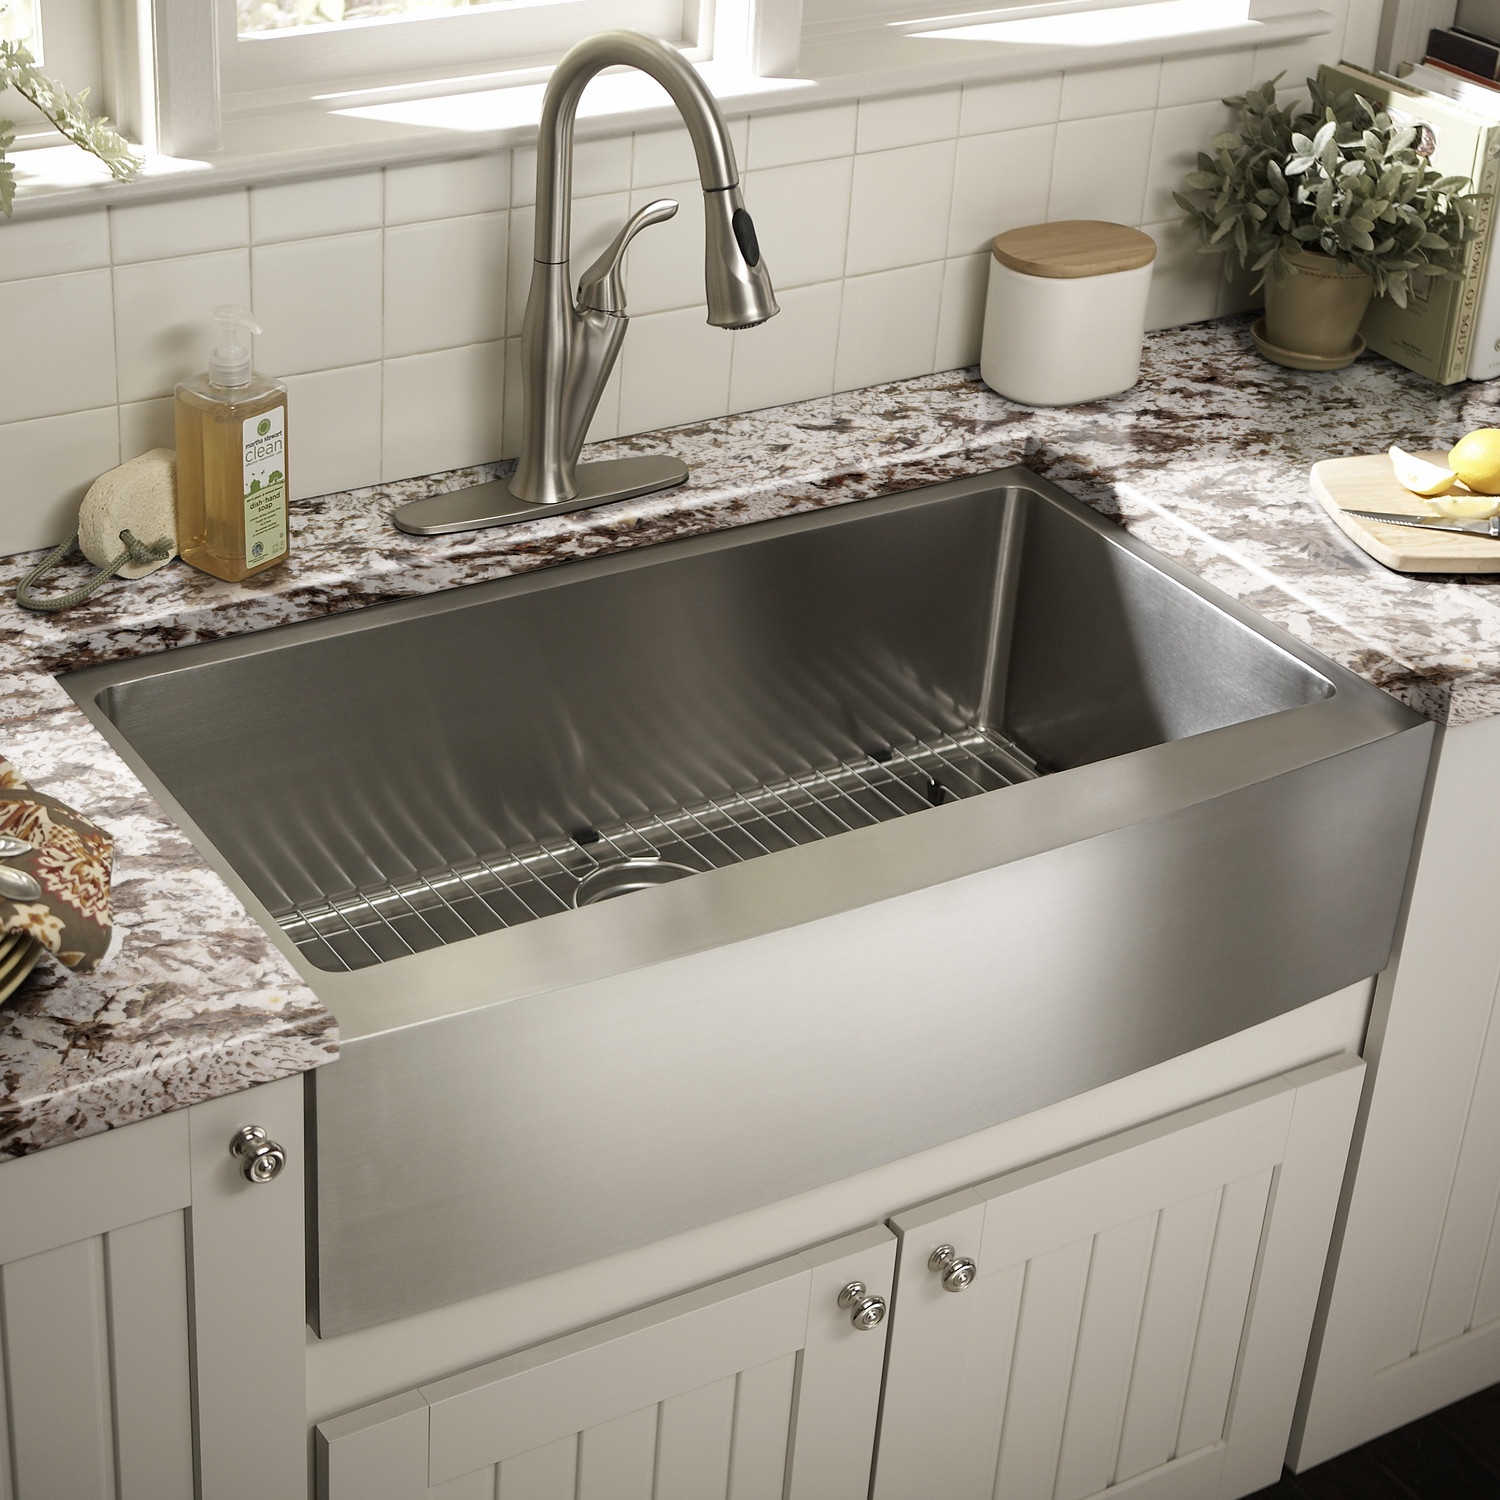 Unique barclay sinks single bowl double bowl stainless kitchen sink barclay sinks for kitchen ideas